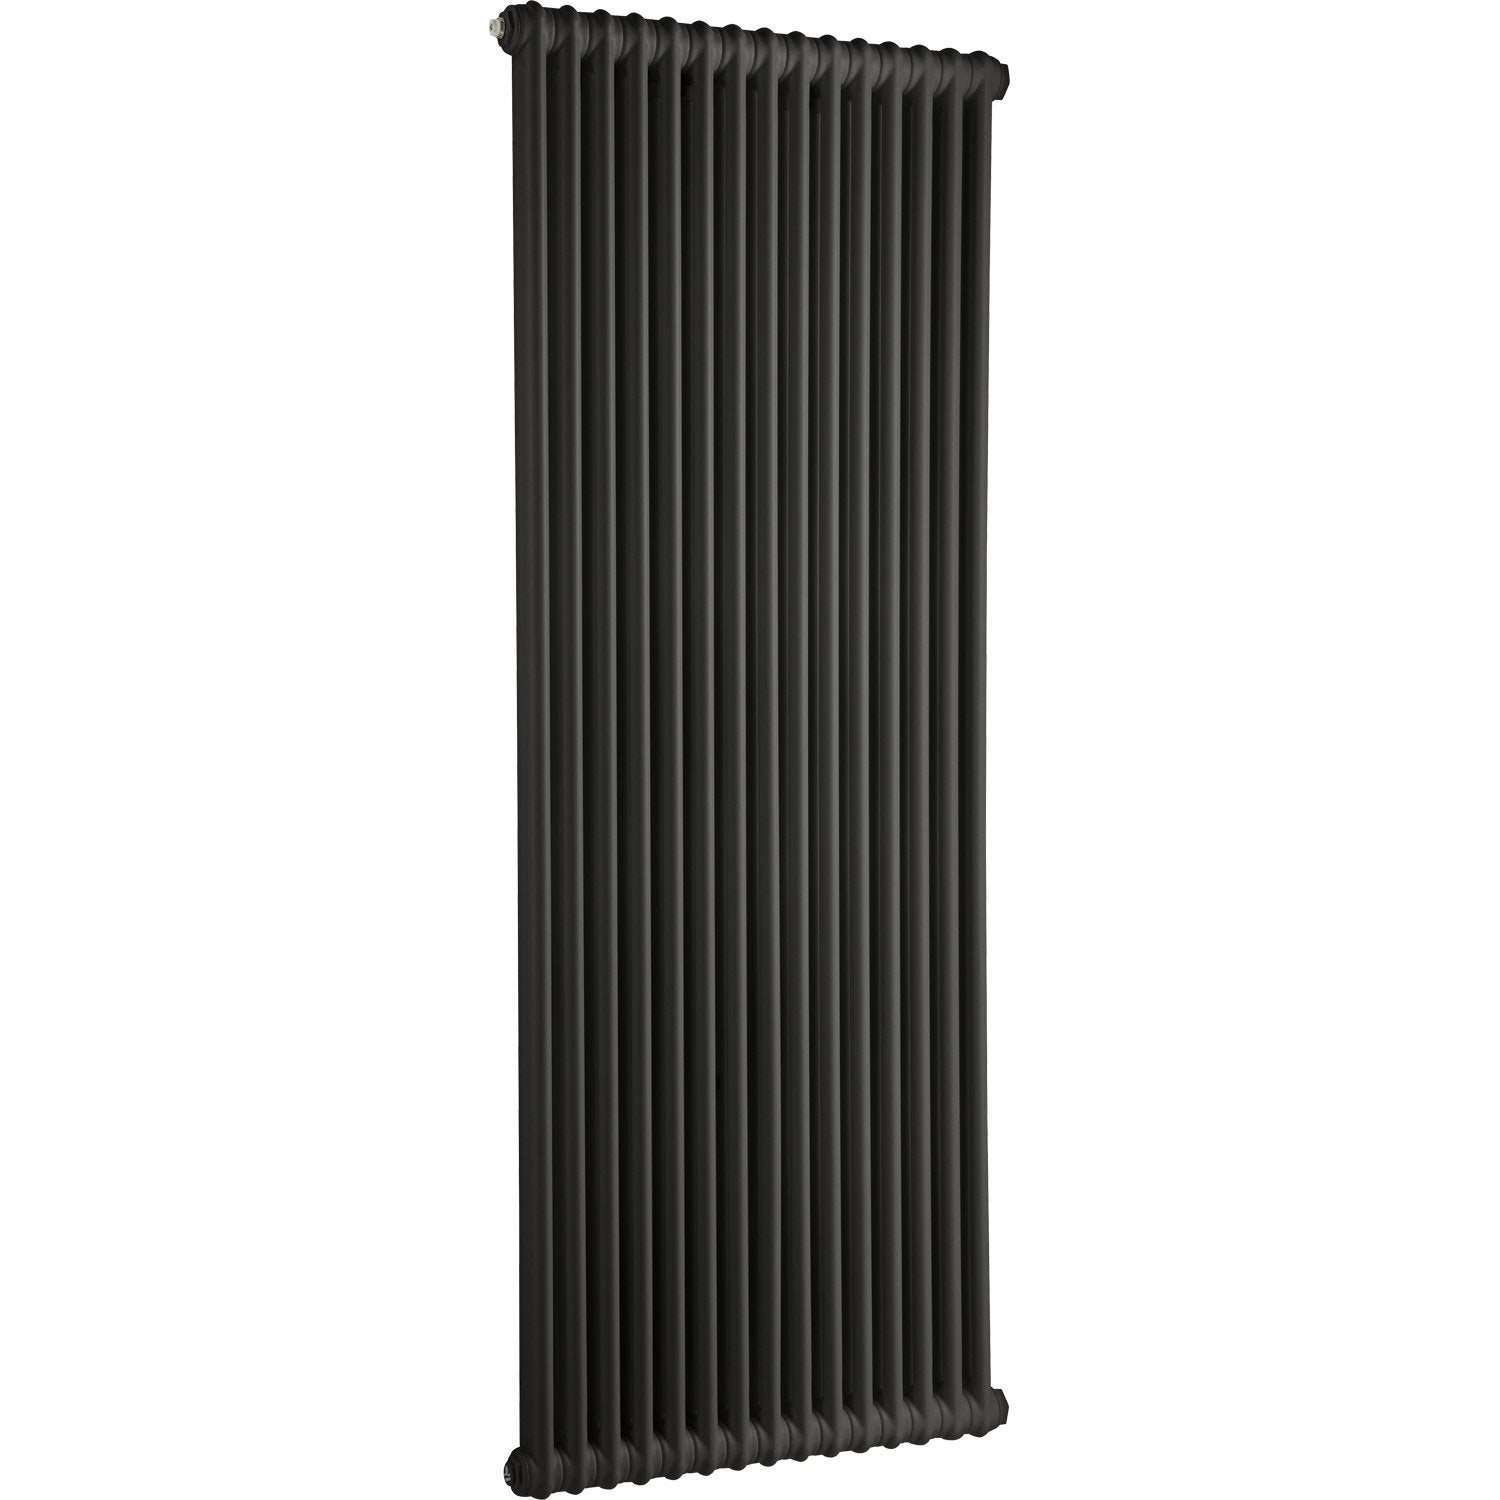 radiateur chauffage central tesi noir cm 1864 w. Black Bedroom Furniture Sets. Home Design Ideas